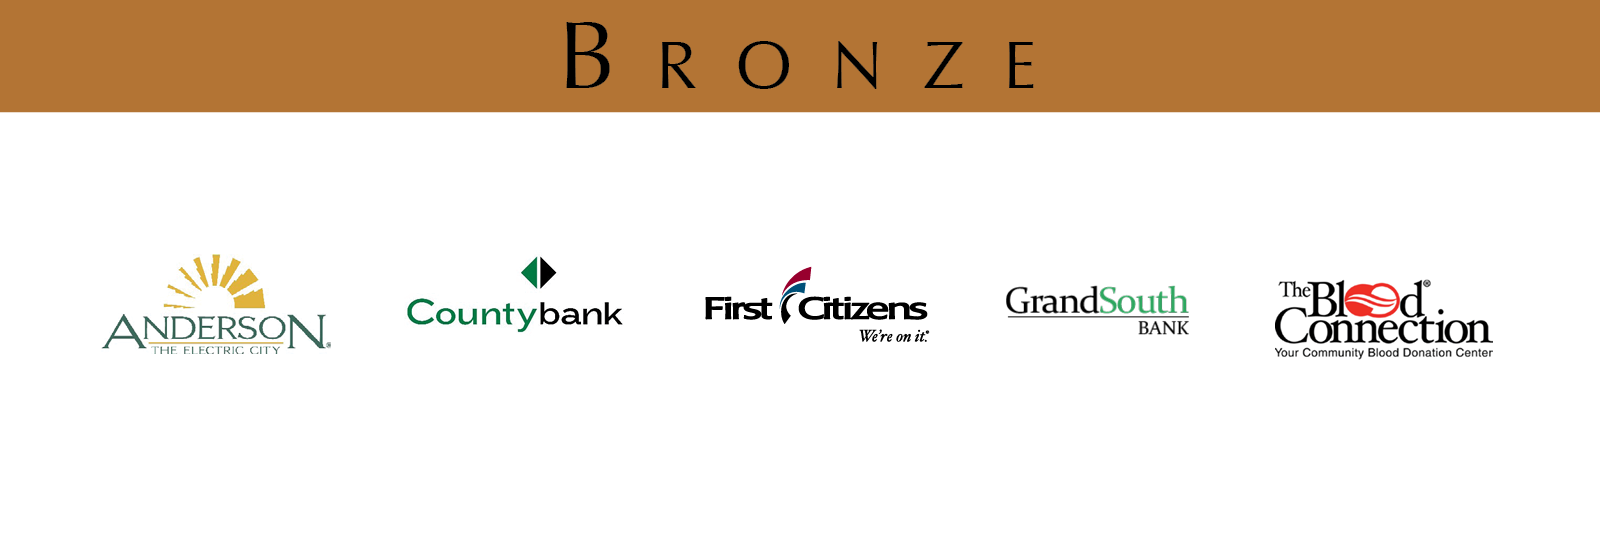 Website-Partnership-Slide-Bronze.png